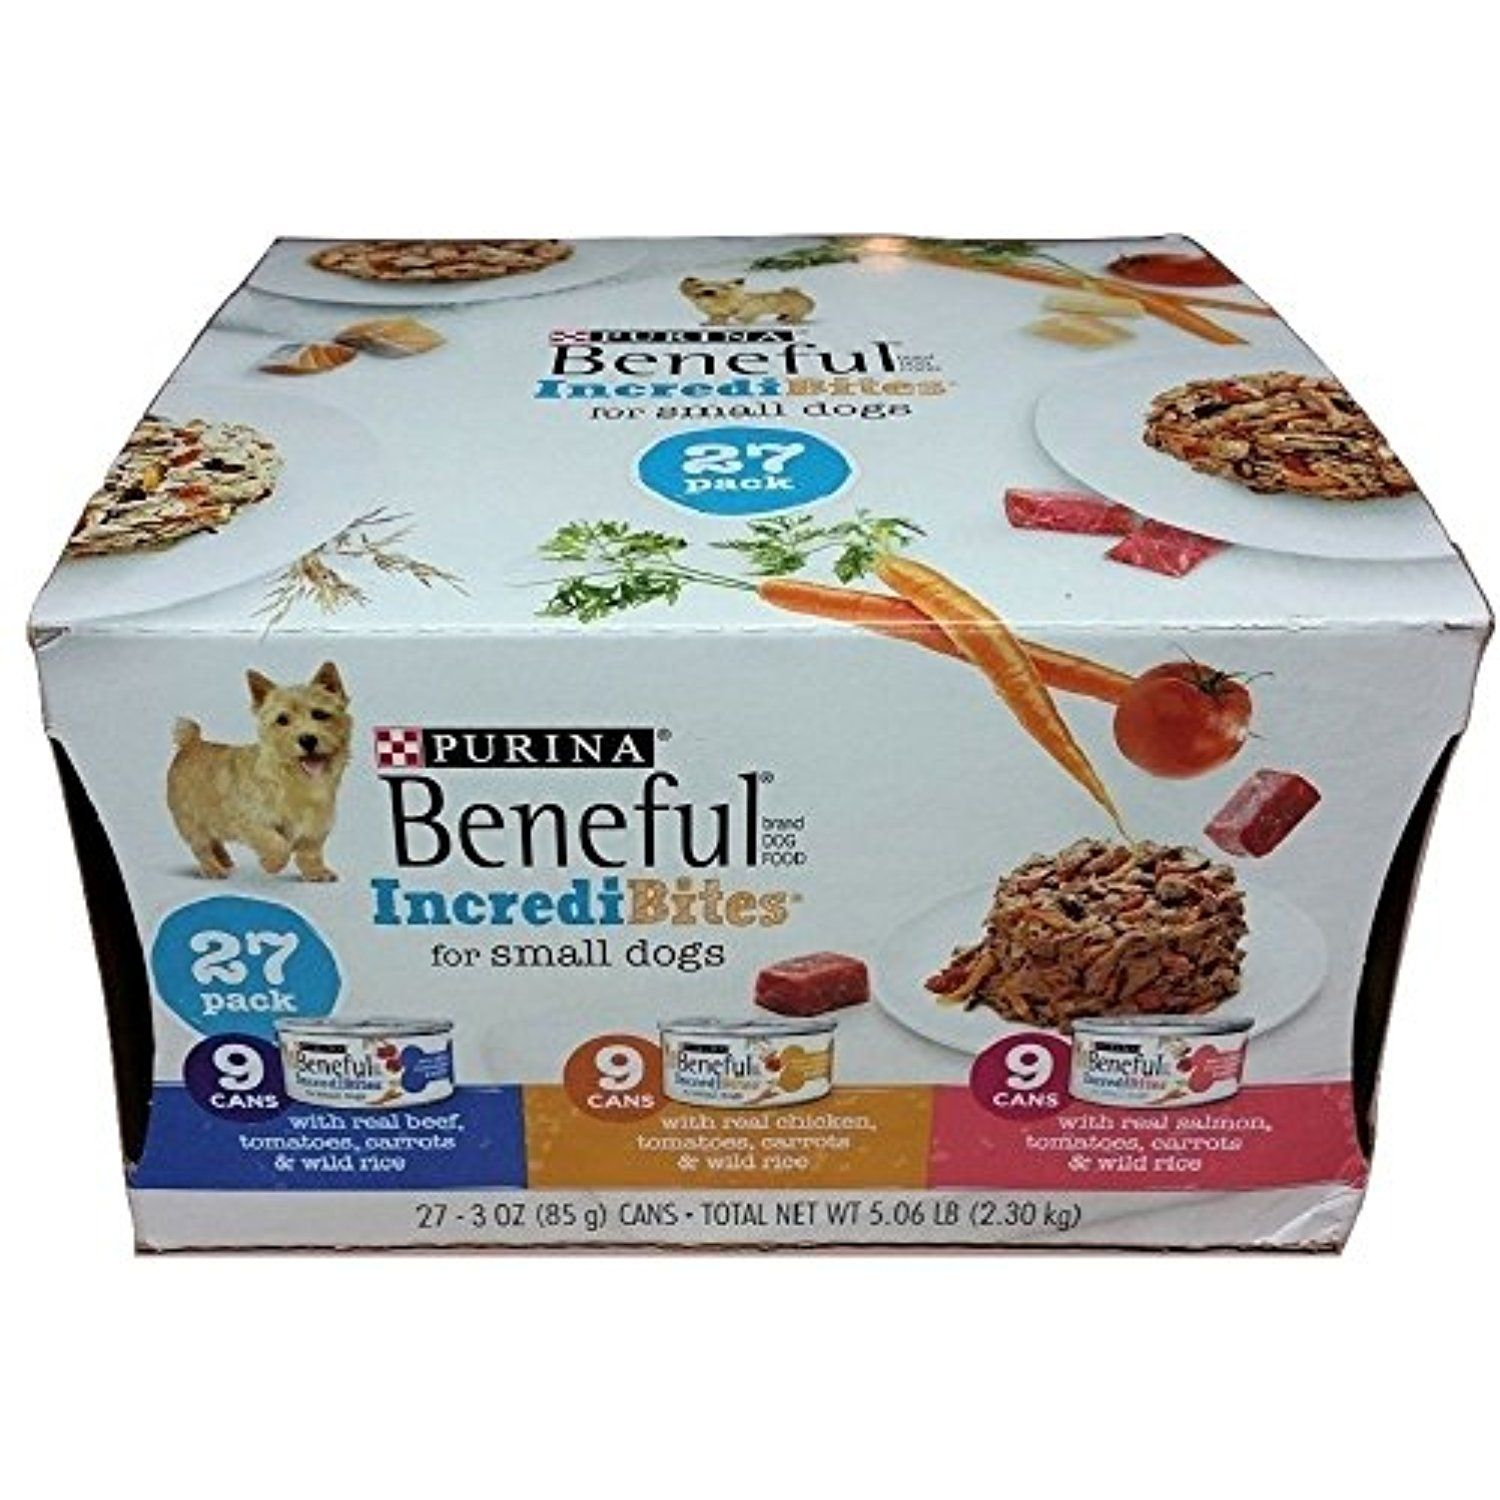 Purina Beneful Incredibites Variety Pack Dog Food 27 3 Oz Cans